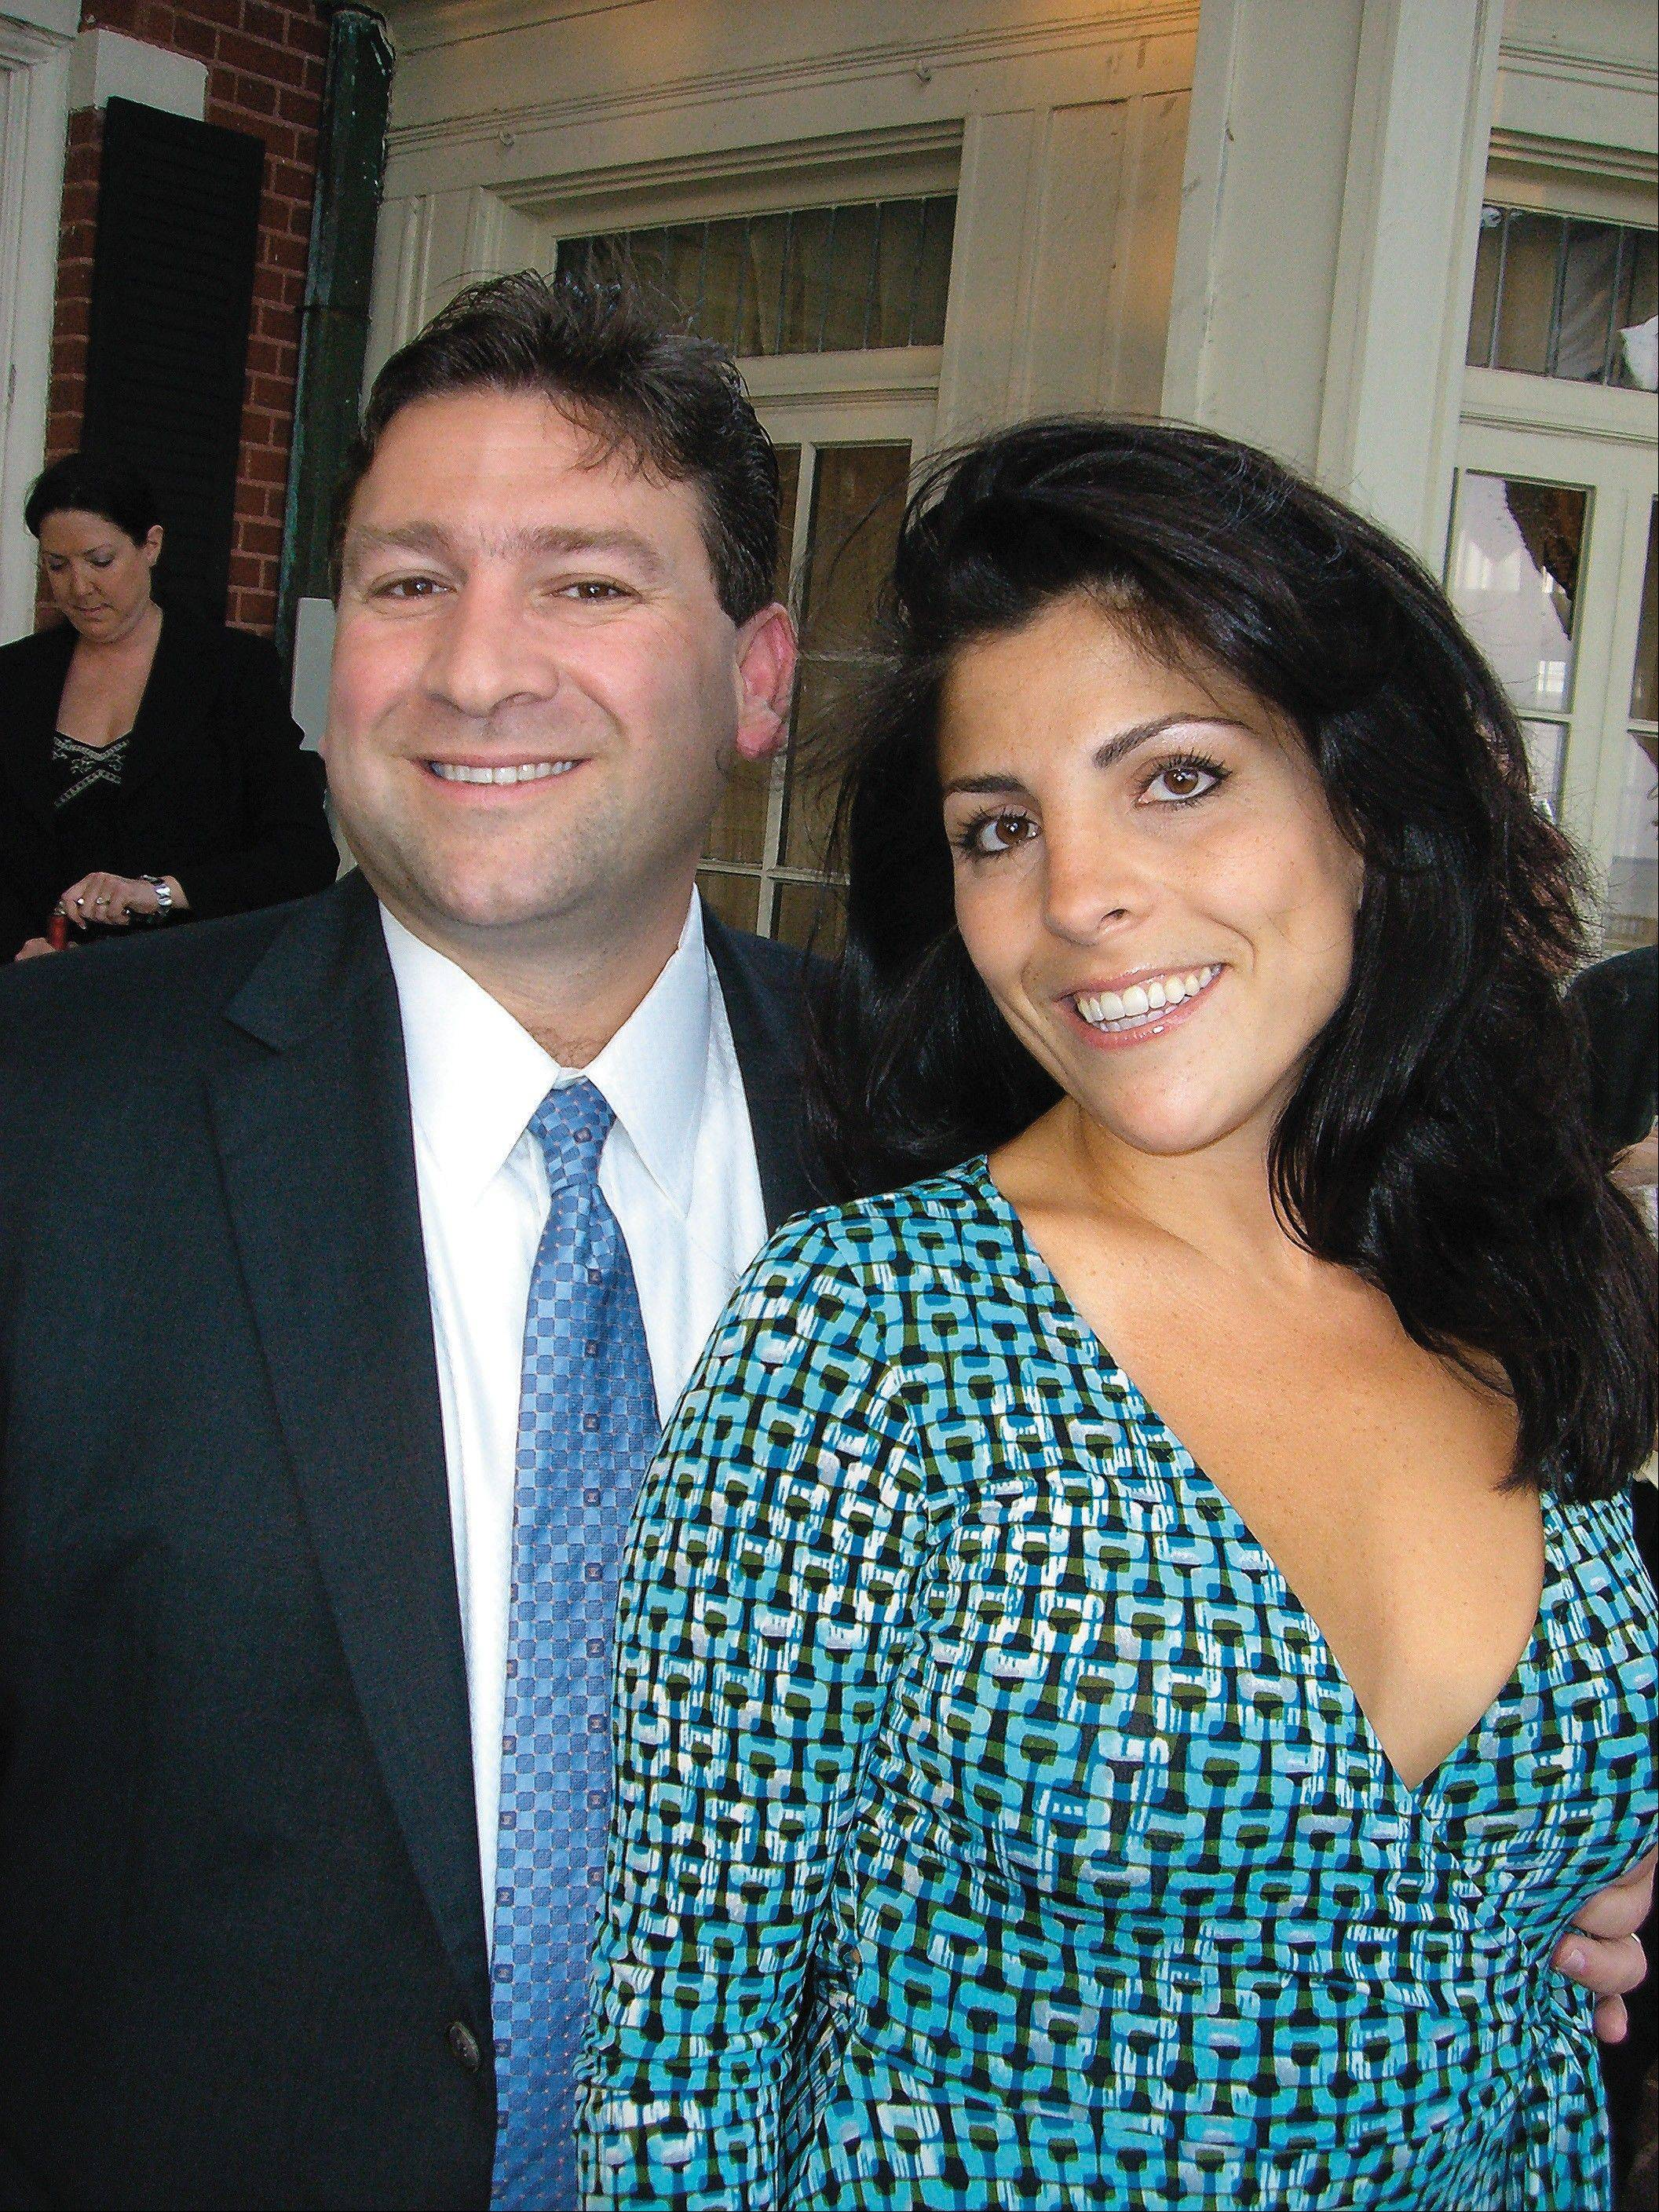 In this March 30, 2007 photo Dr. Scott Kelley, left and his wife Jill Kelley pose for a photo in Tampa, Fla.